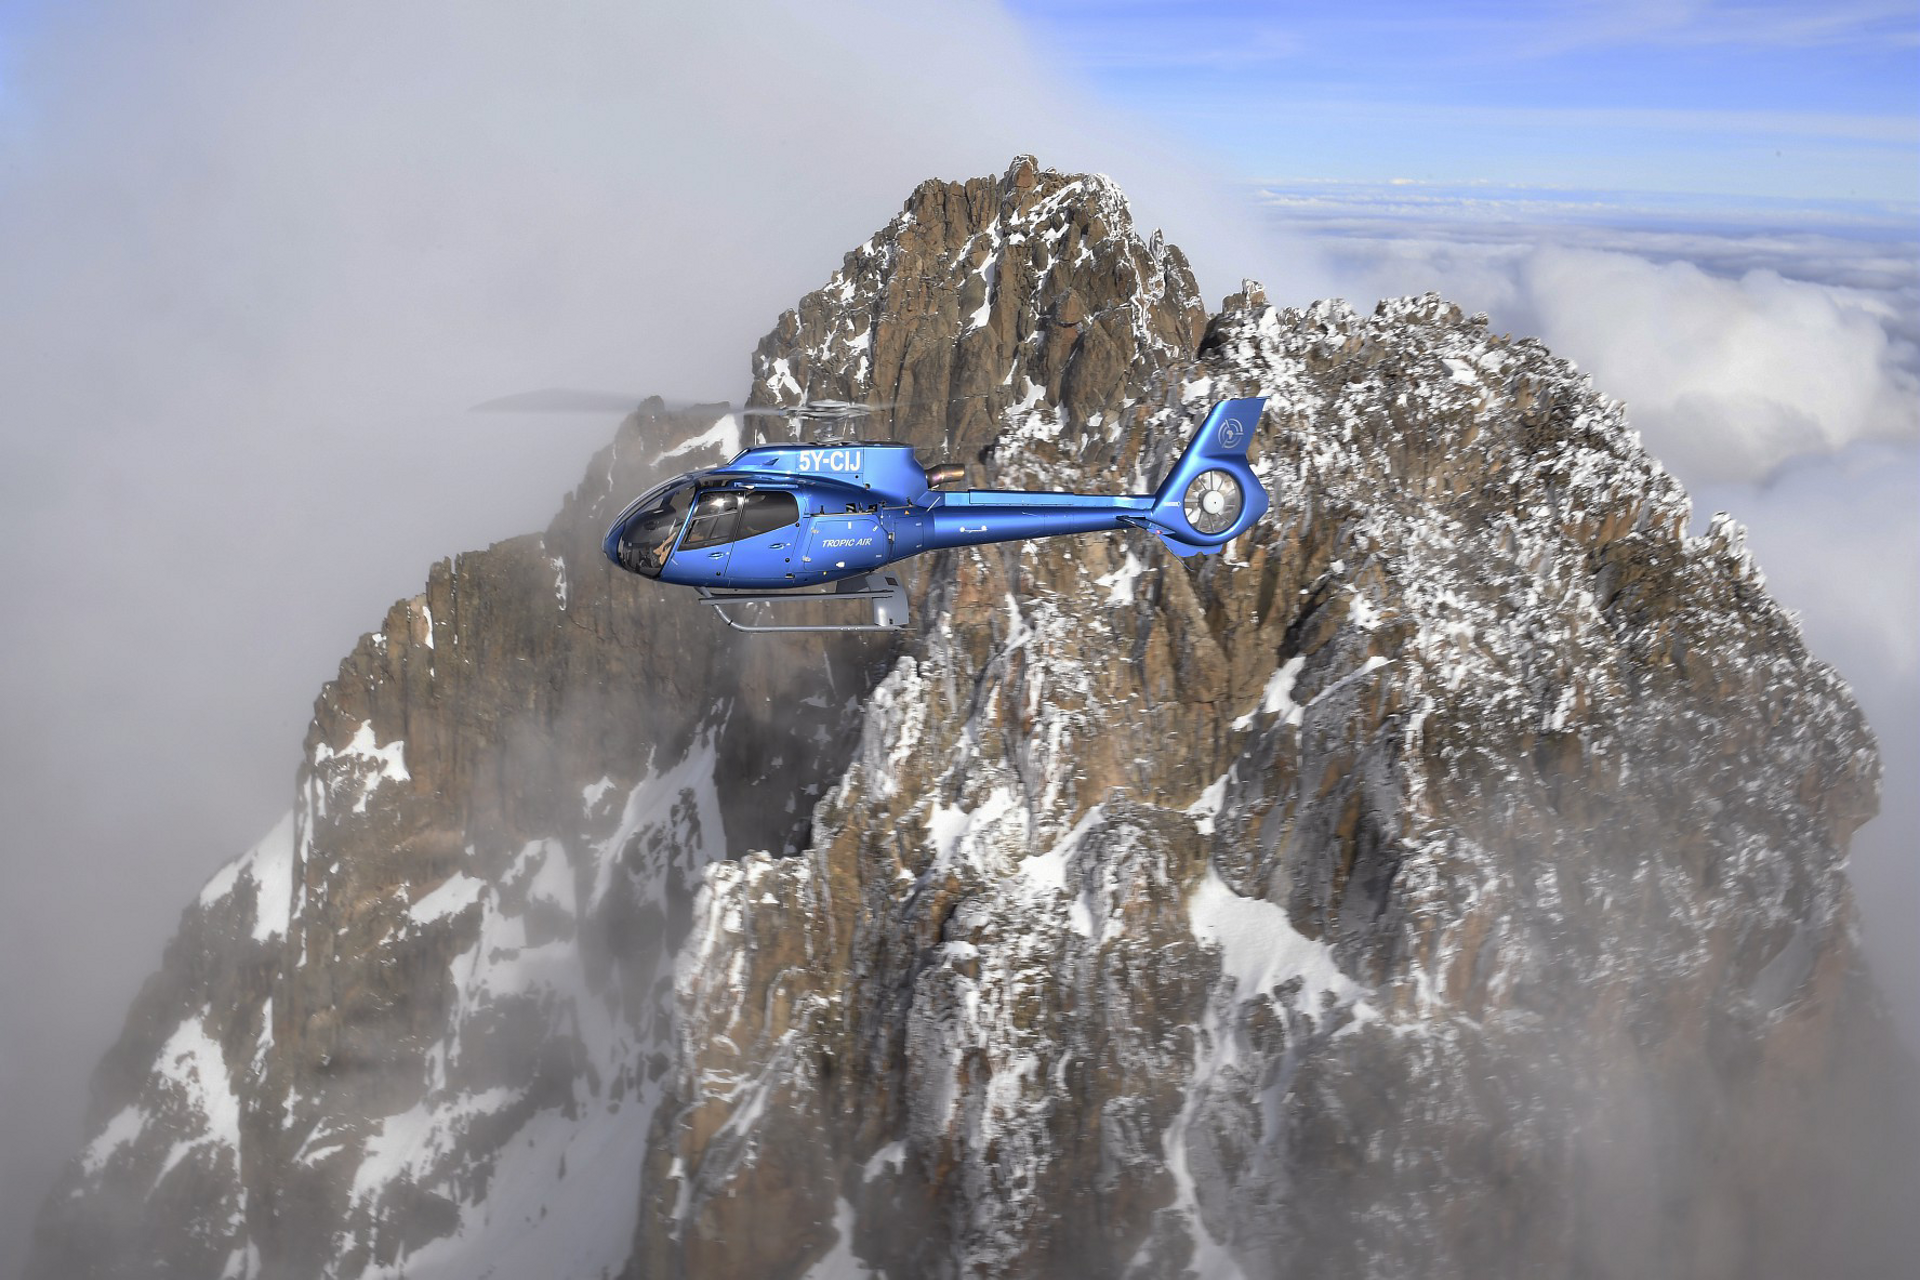 Mount Kenya at 5,199 metres presents no challenge to the H130.